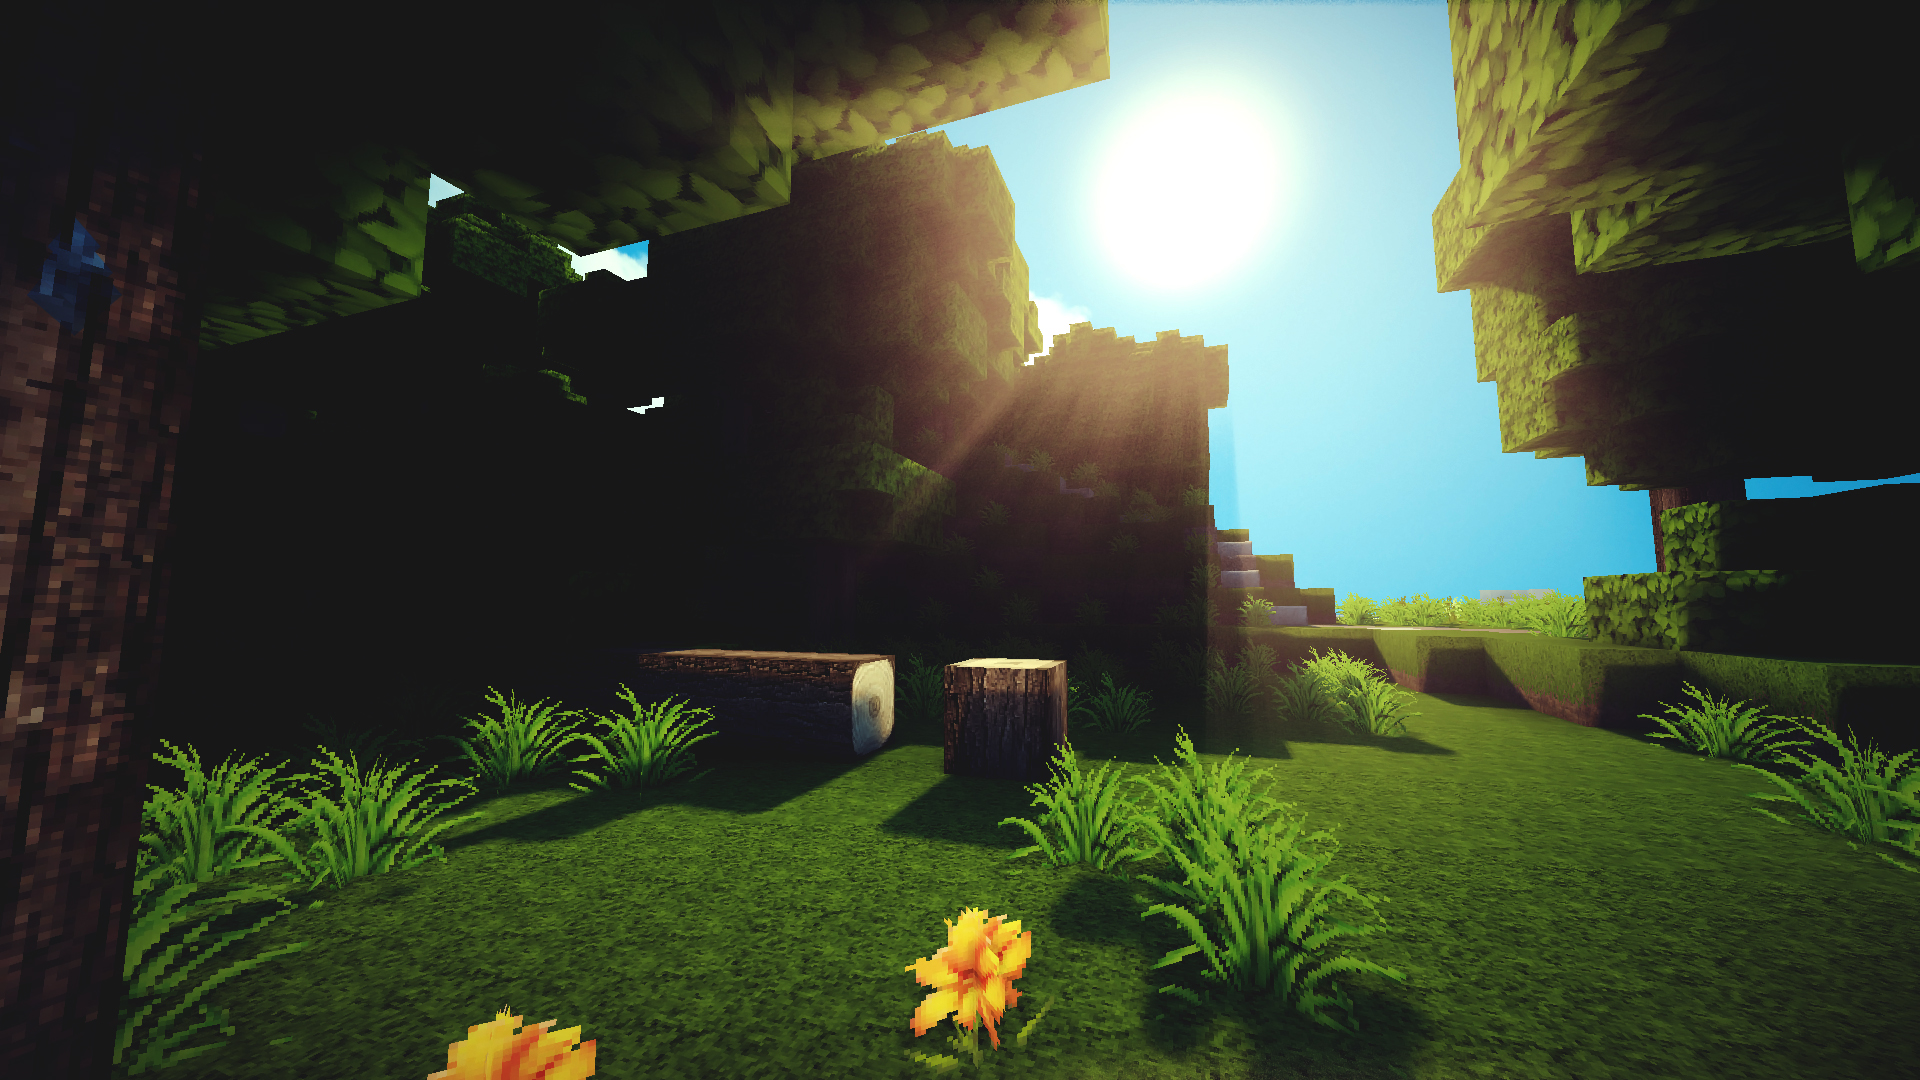 Awesome minecraft Background Widescreen Background 1920x1080